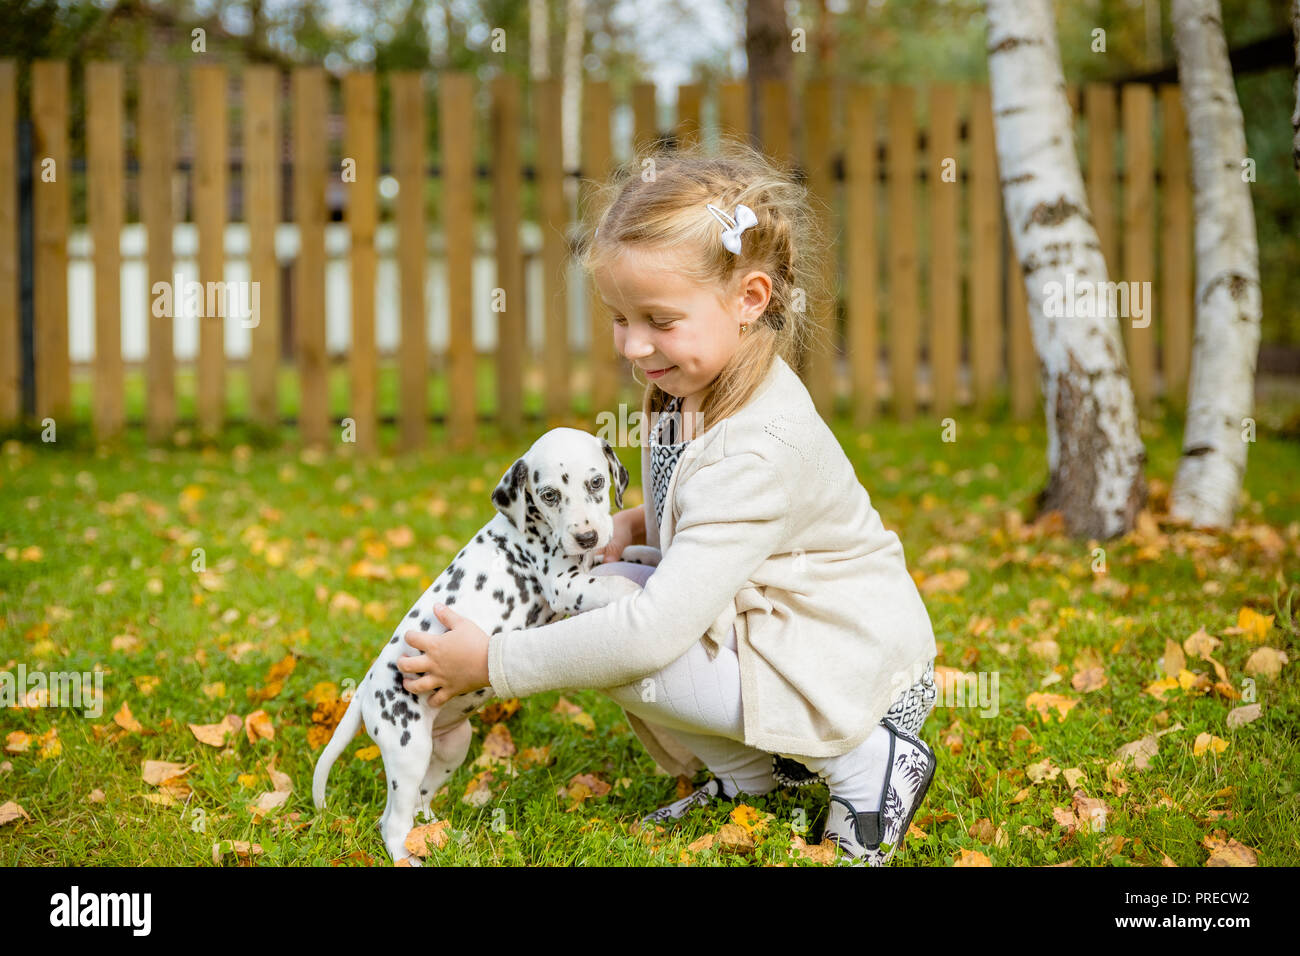 A cute little toddler girl giving a hug to her dog,Dalmatian puppy, fall season in a garden,lawn with autumn leaves in the background.Concept of love for nature, protection of animals,innocence, fun, joy, carefree childhood.Copy space - Stock Image